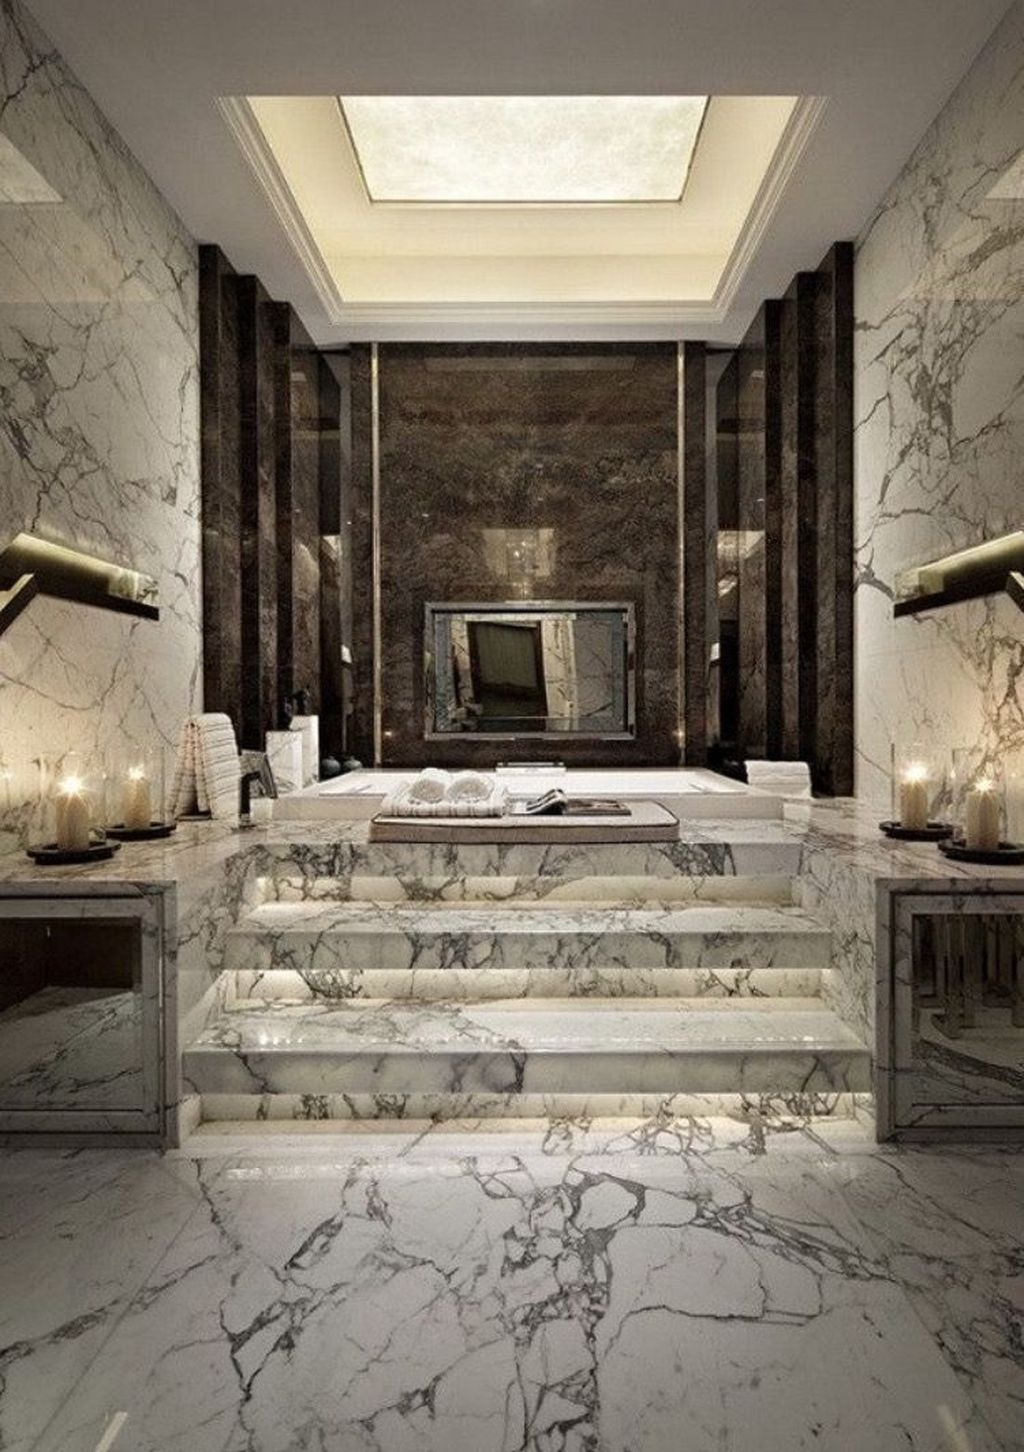 Luxury Bathroom Design And Decor Ideas 35